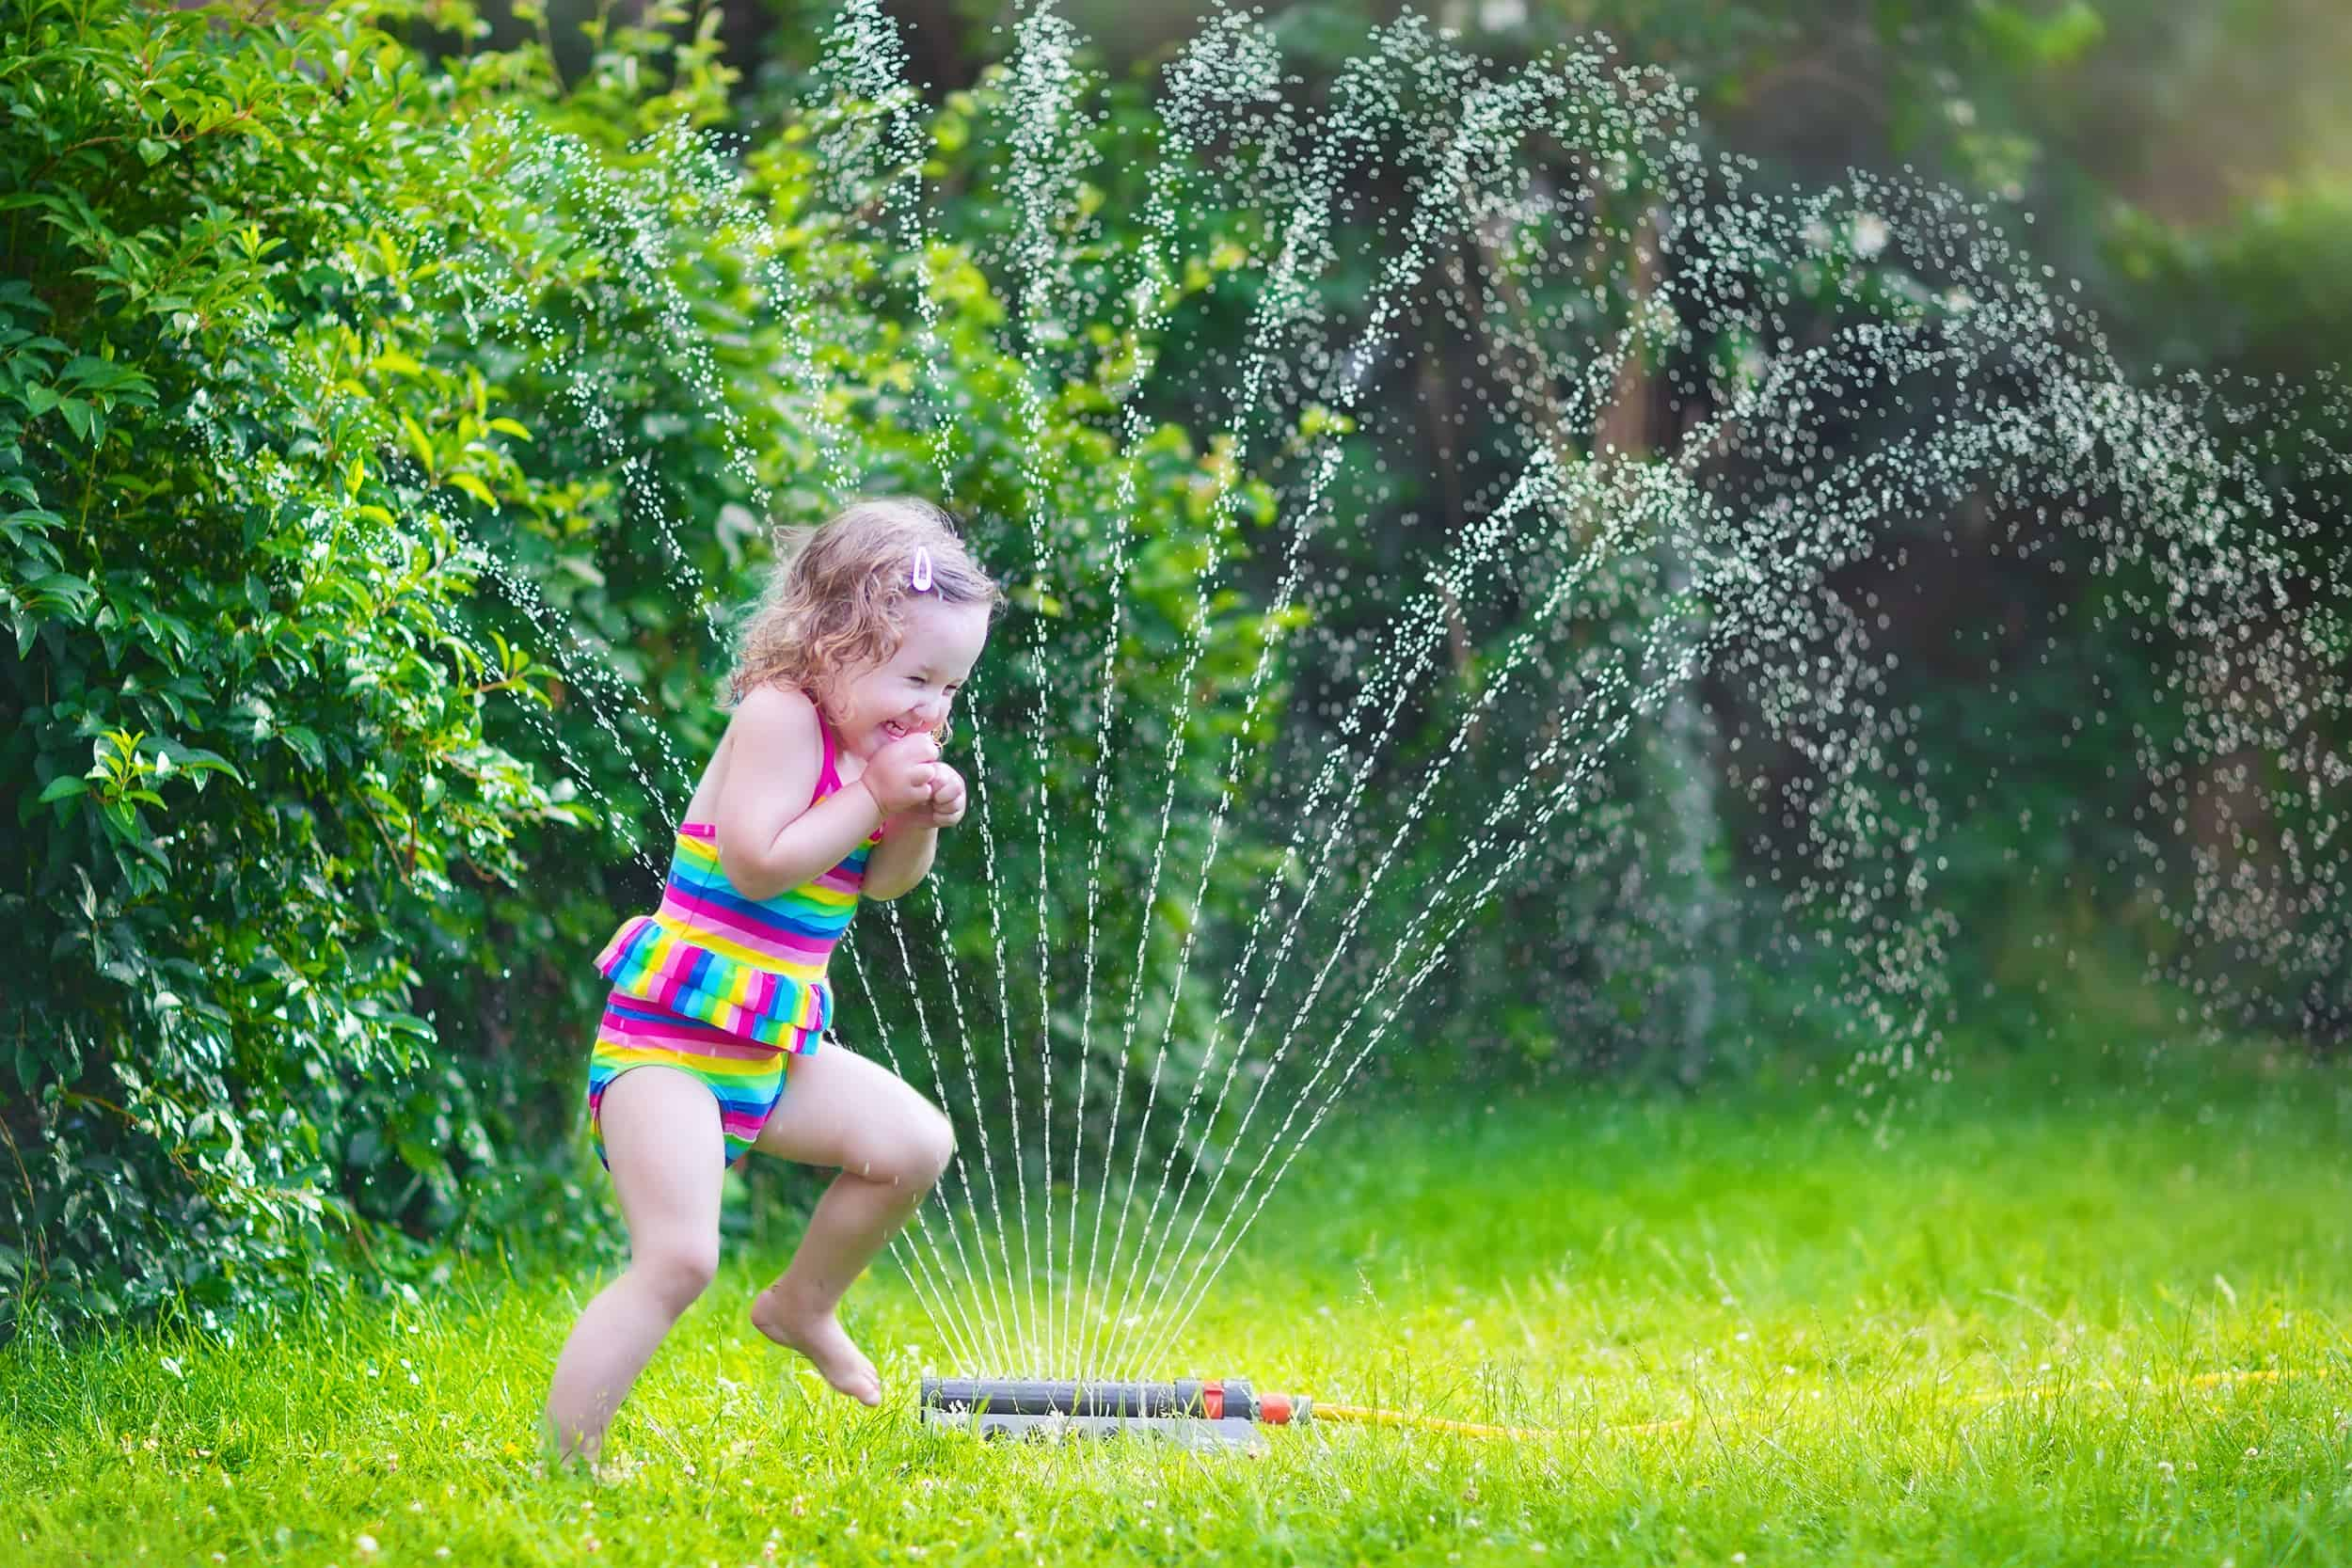 Cheap DIY water toys - Funny laughing little girl in a colorful swimming suit running though garden sprinkler playing with water splashes having fun in the backyard on a sunny hot summer vacation day